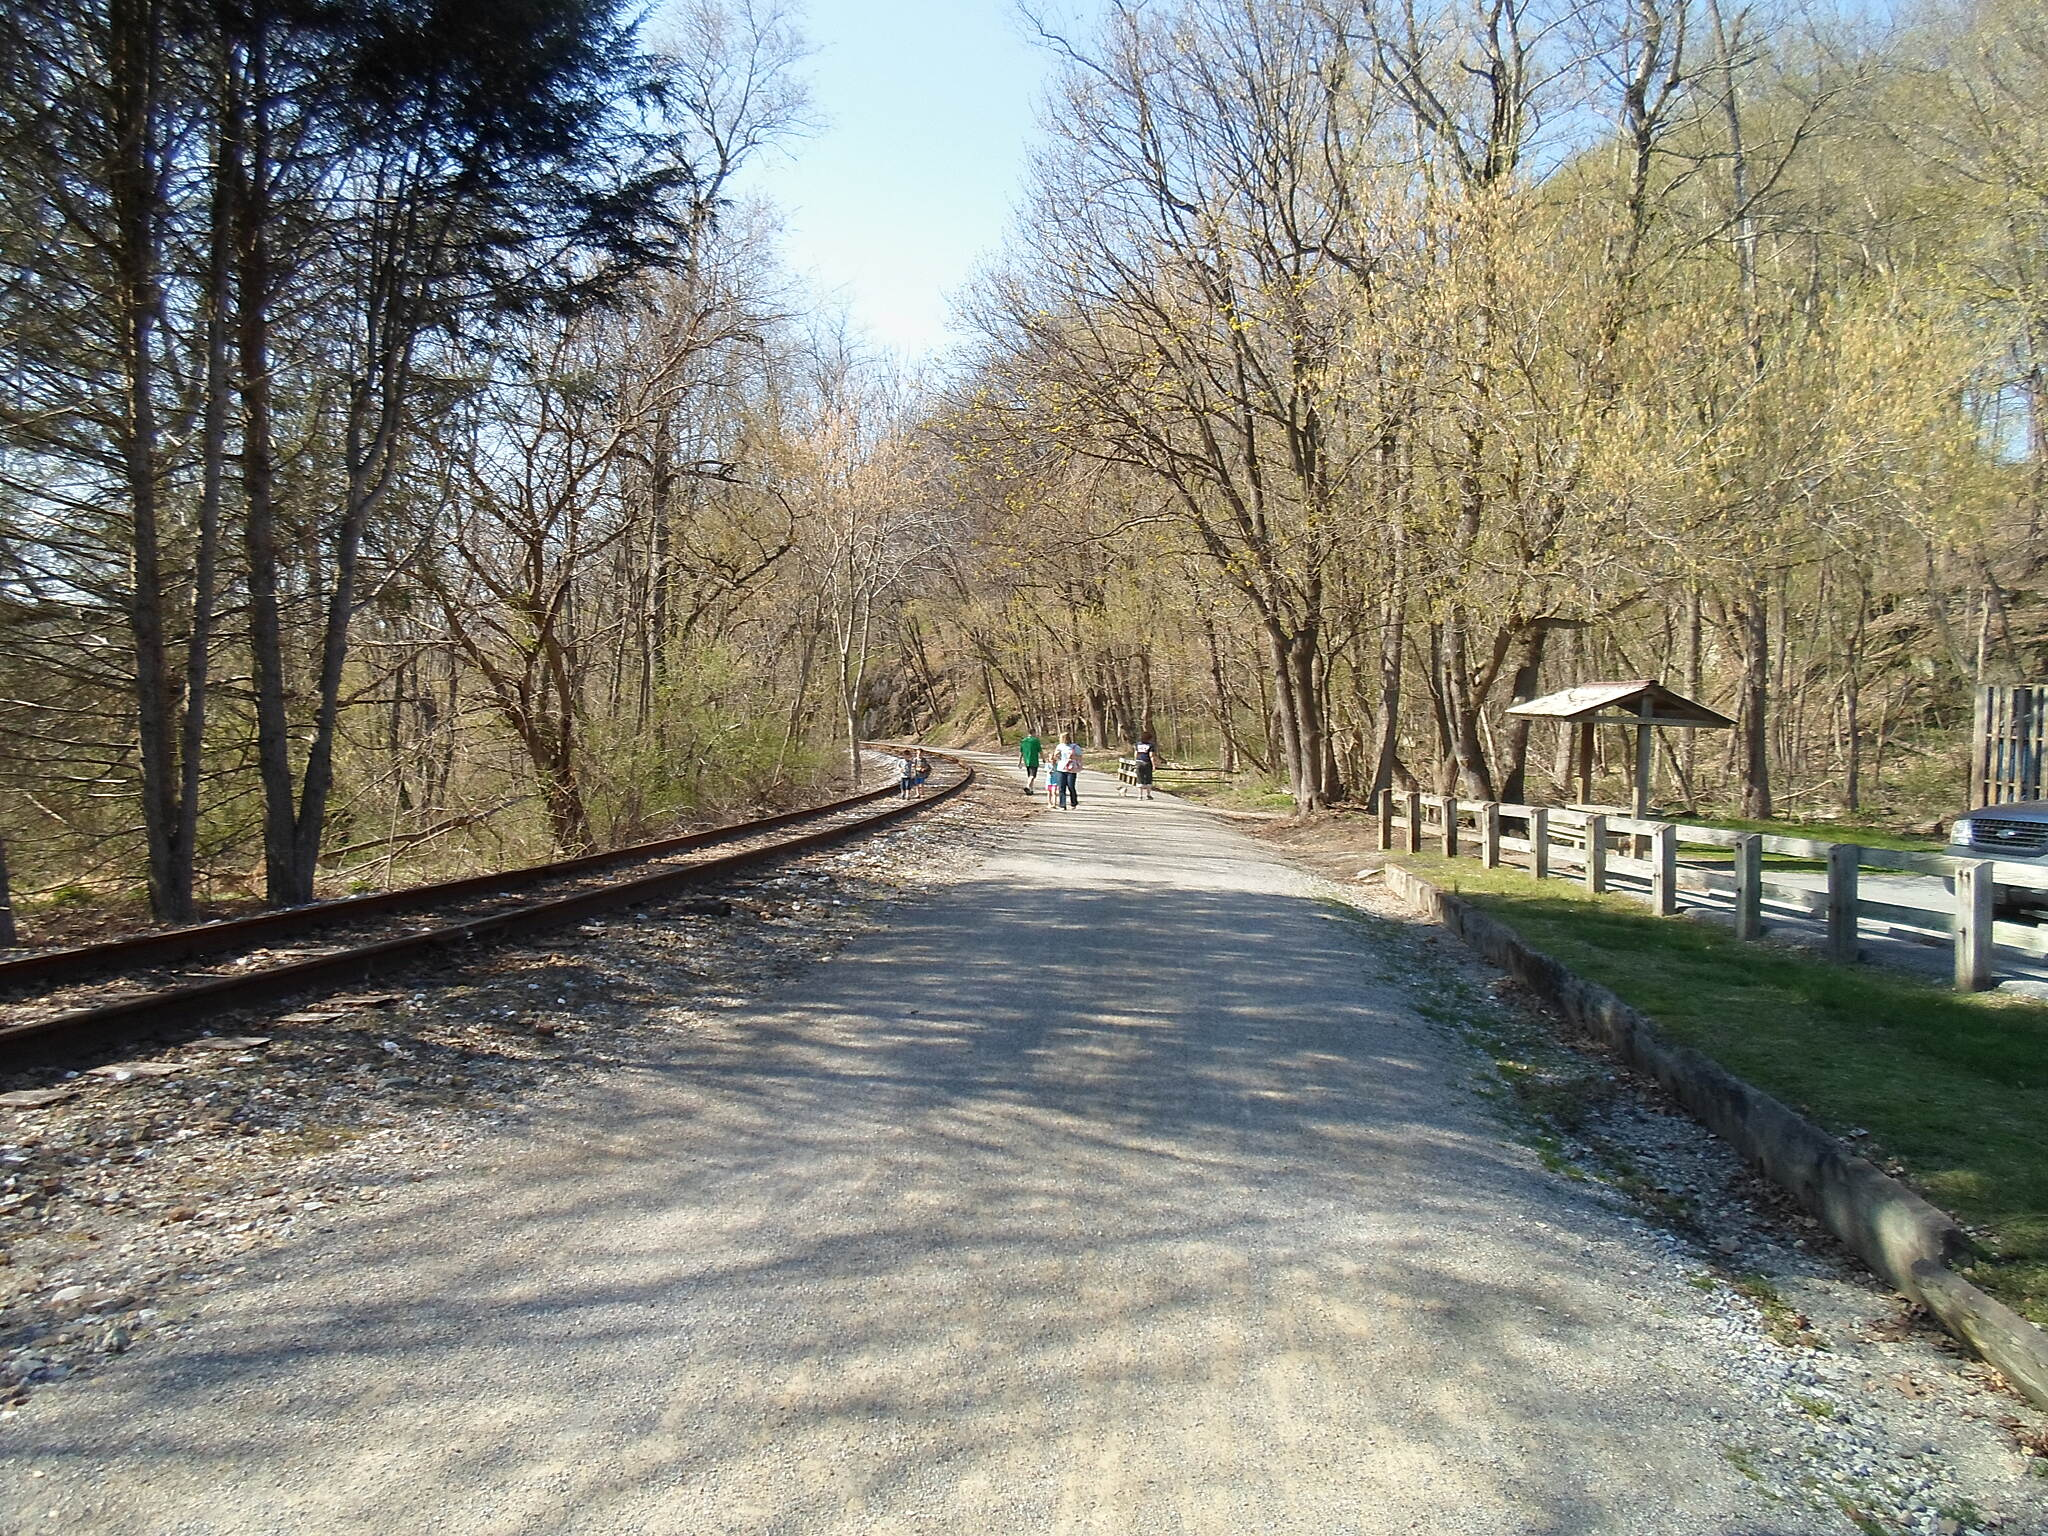 Heritage Rail Trail County Park Heritage Rail Trail Park Looking north from the Railroad trailhead. Taken April 2015.